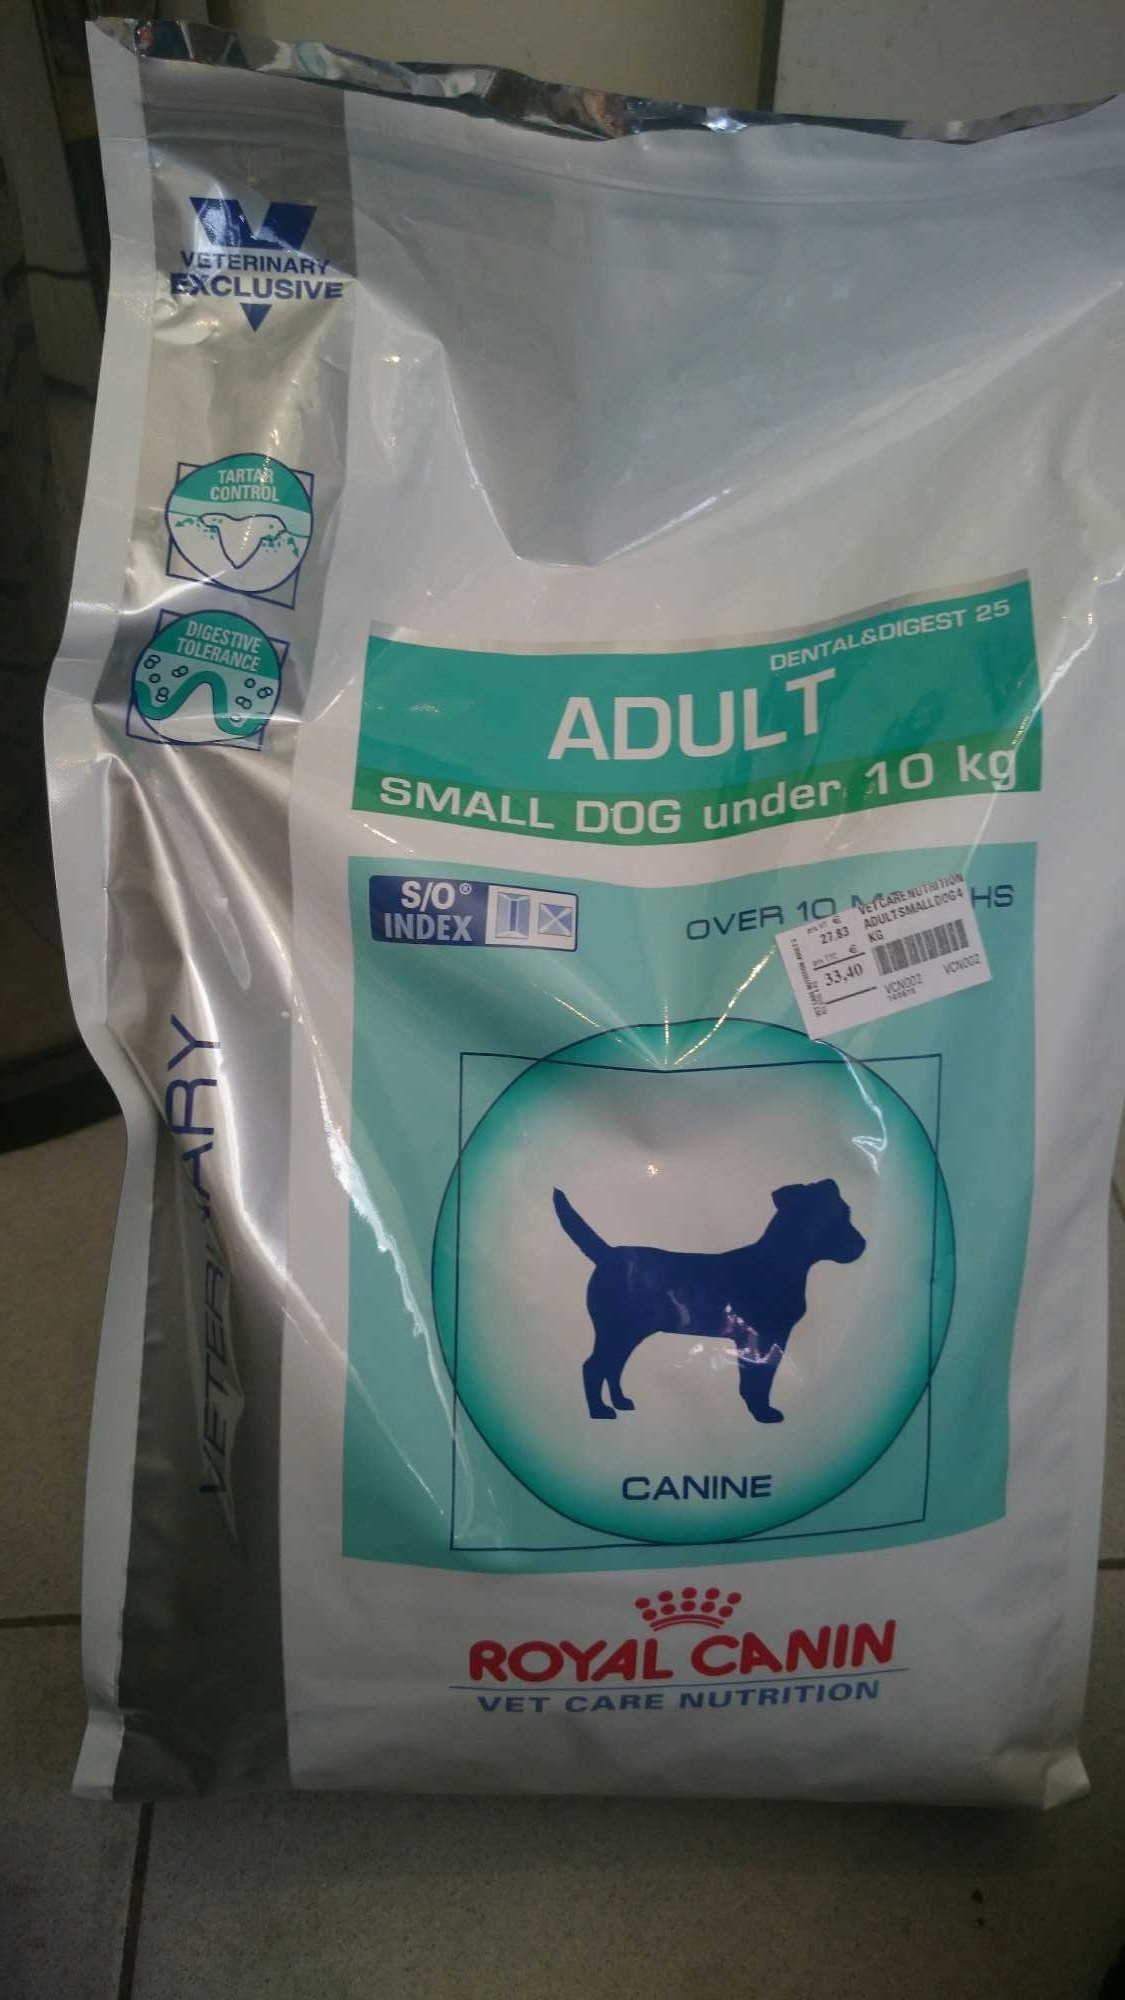 Adult - Small dog under 10 k - Product